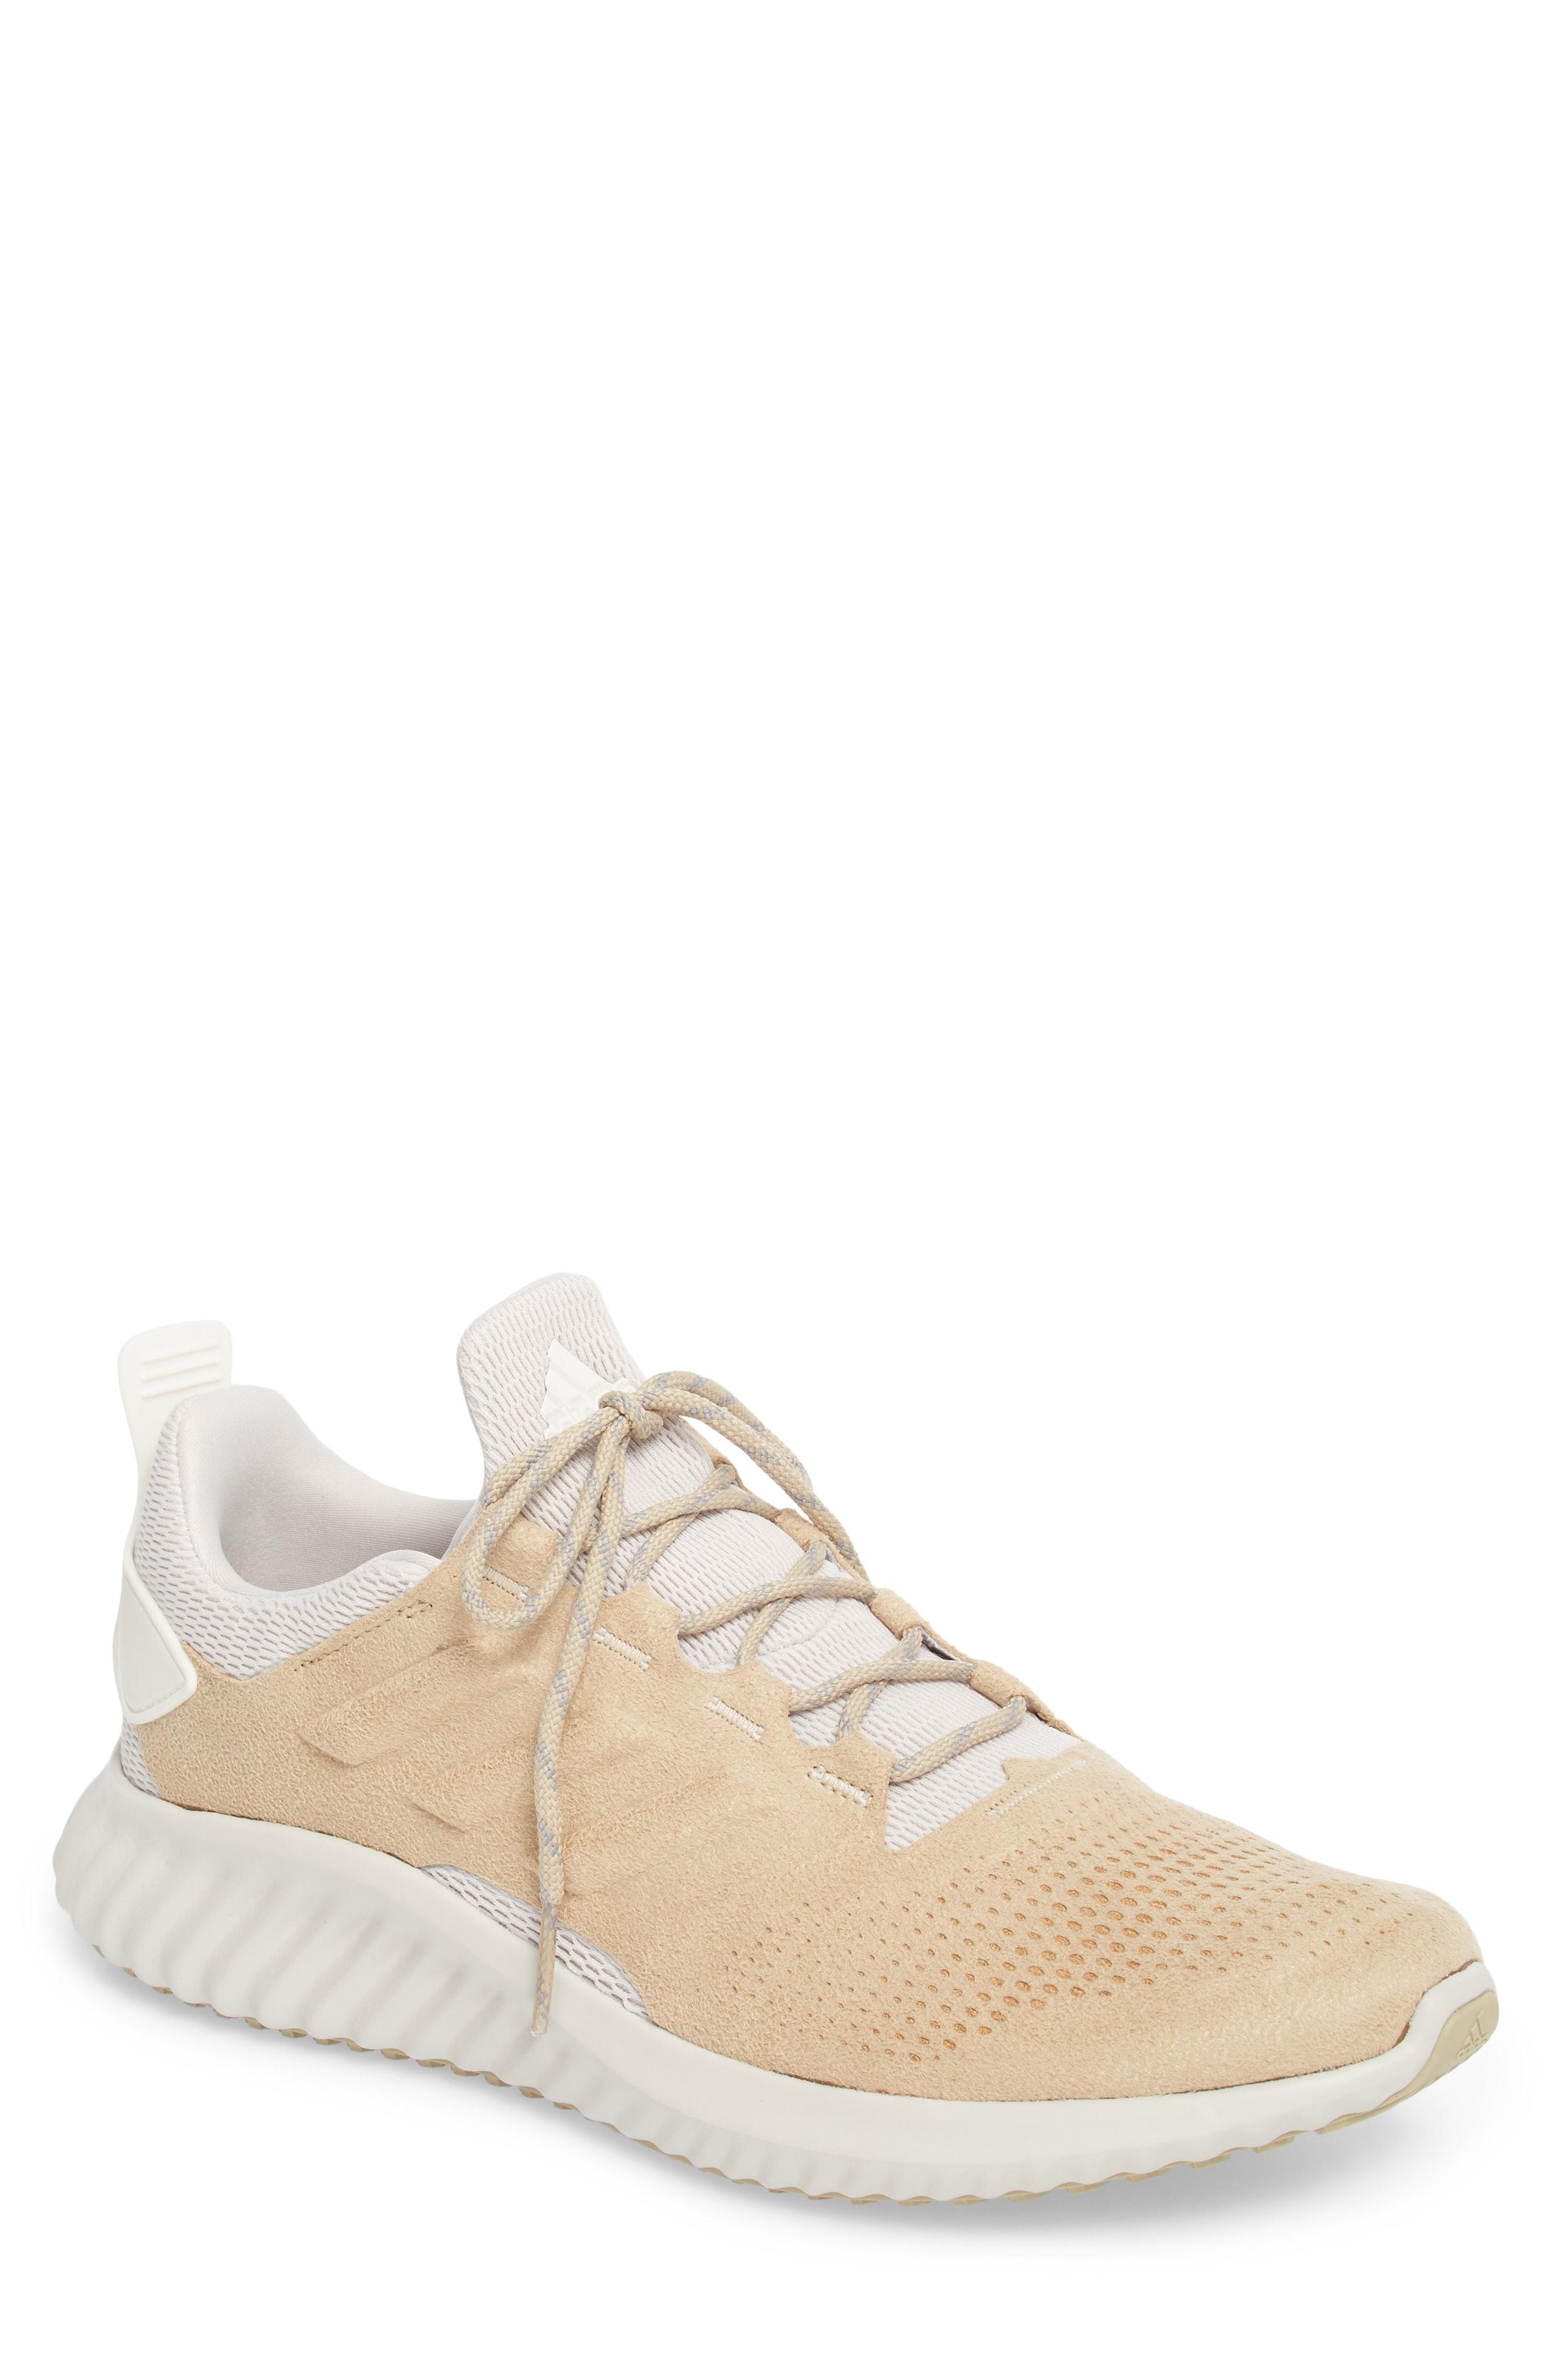 b0e963669 Adidas Originals Adidas Men s Alphabounce City Running Sneakers From Finish  Line In Brown